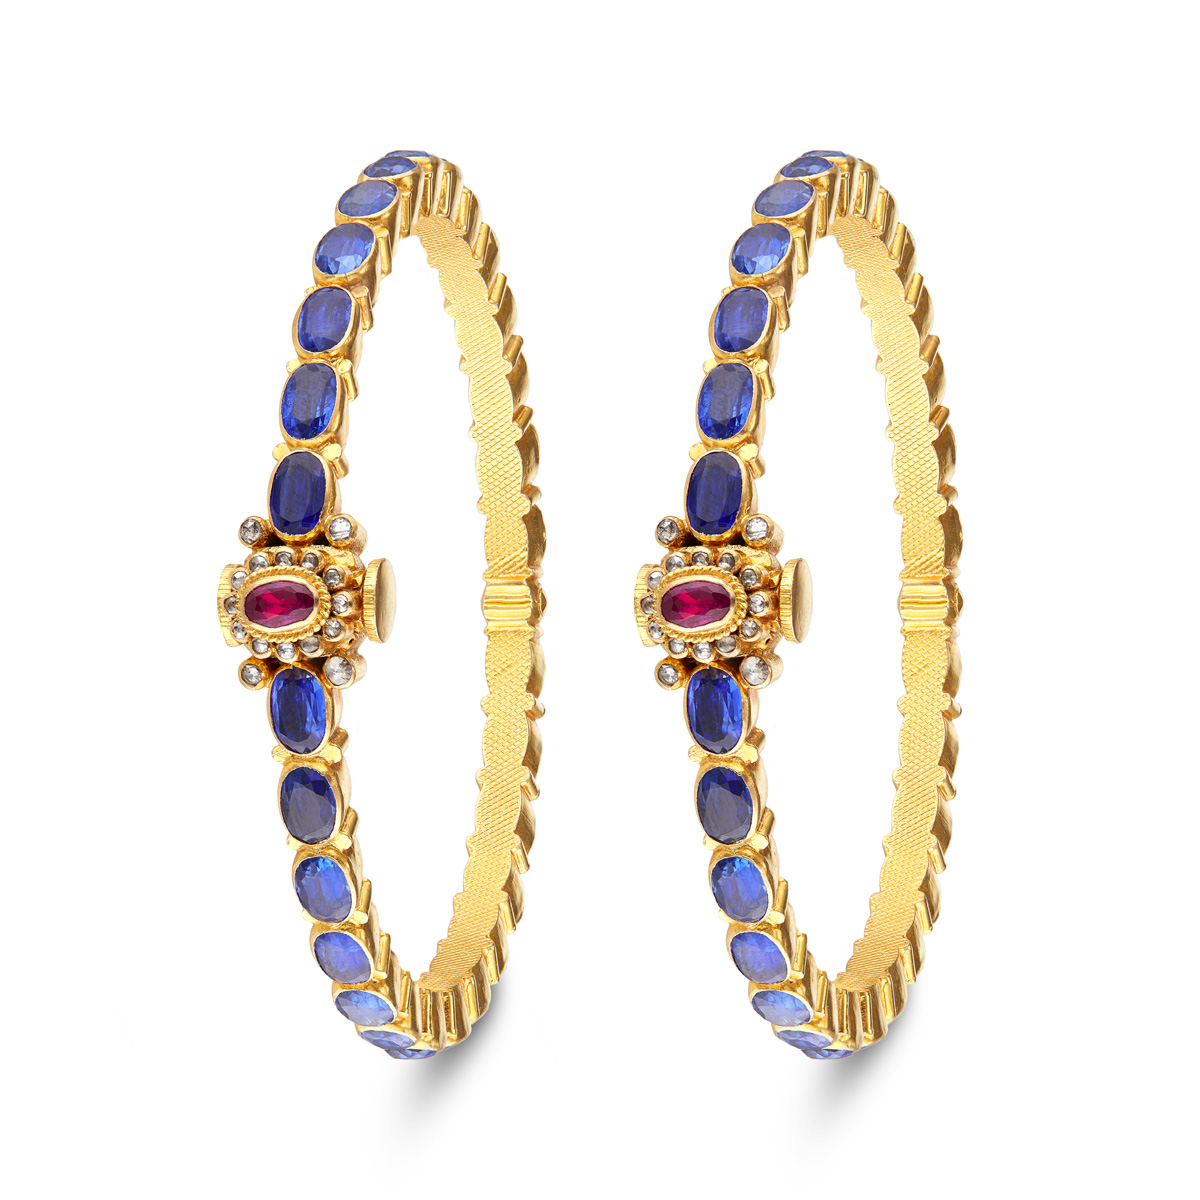 Oval Rubies&Blue Sapphires!